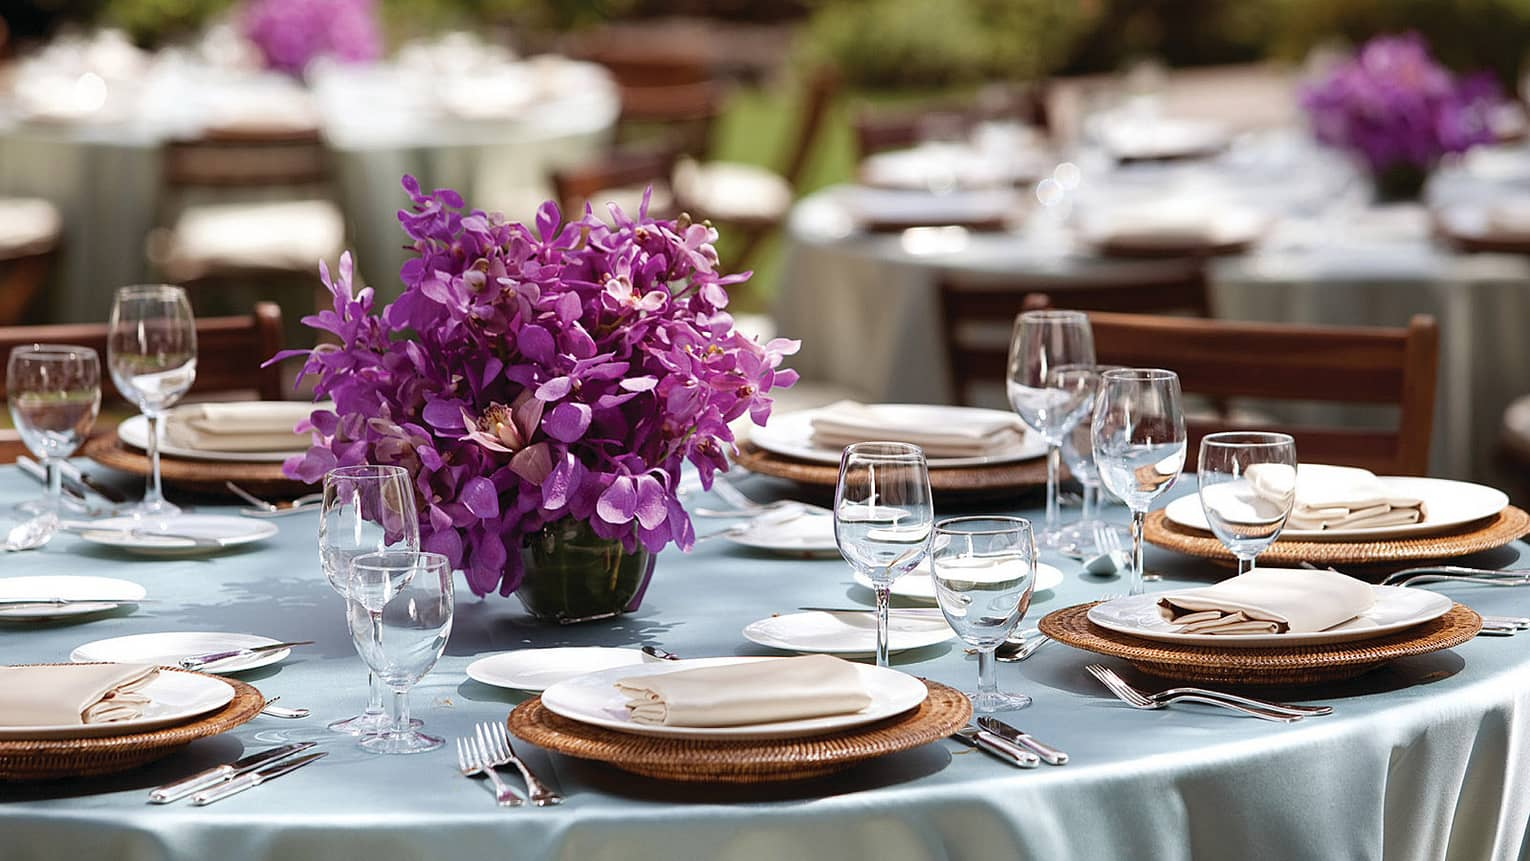 Close-up of round outdoor dining table with place settings, purple flower centrepiece